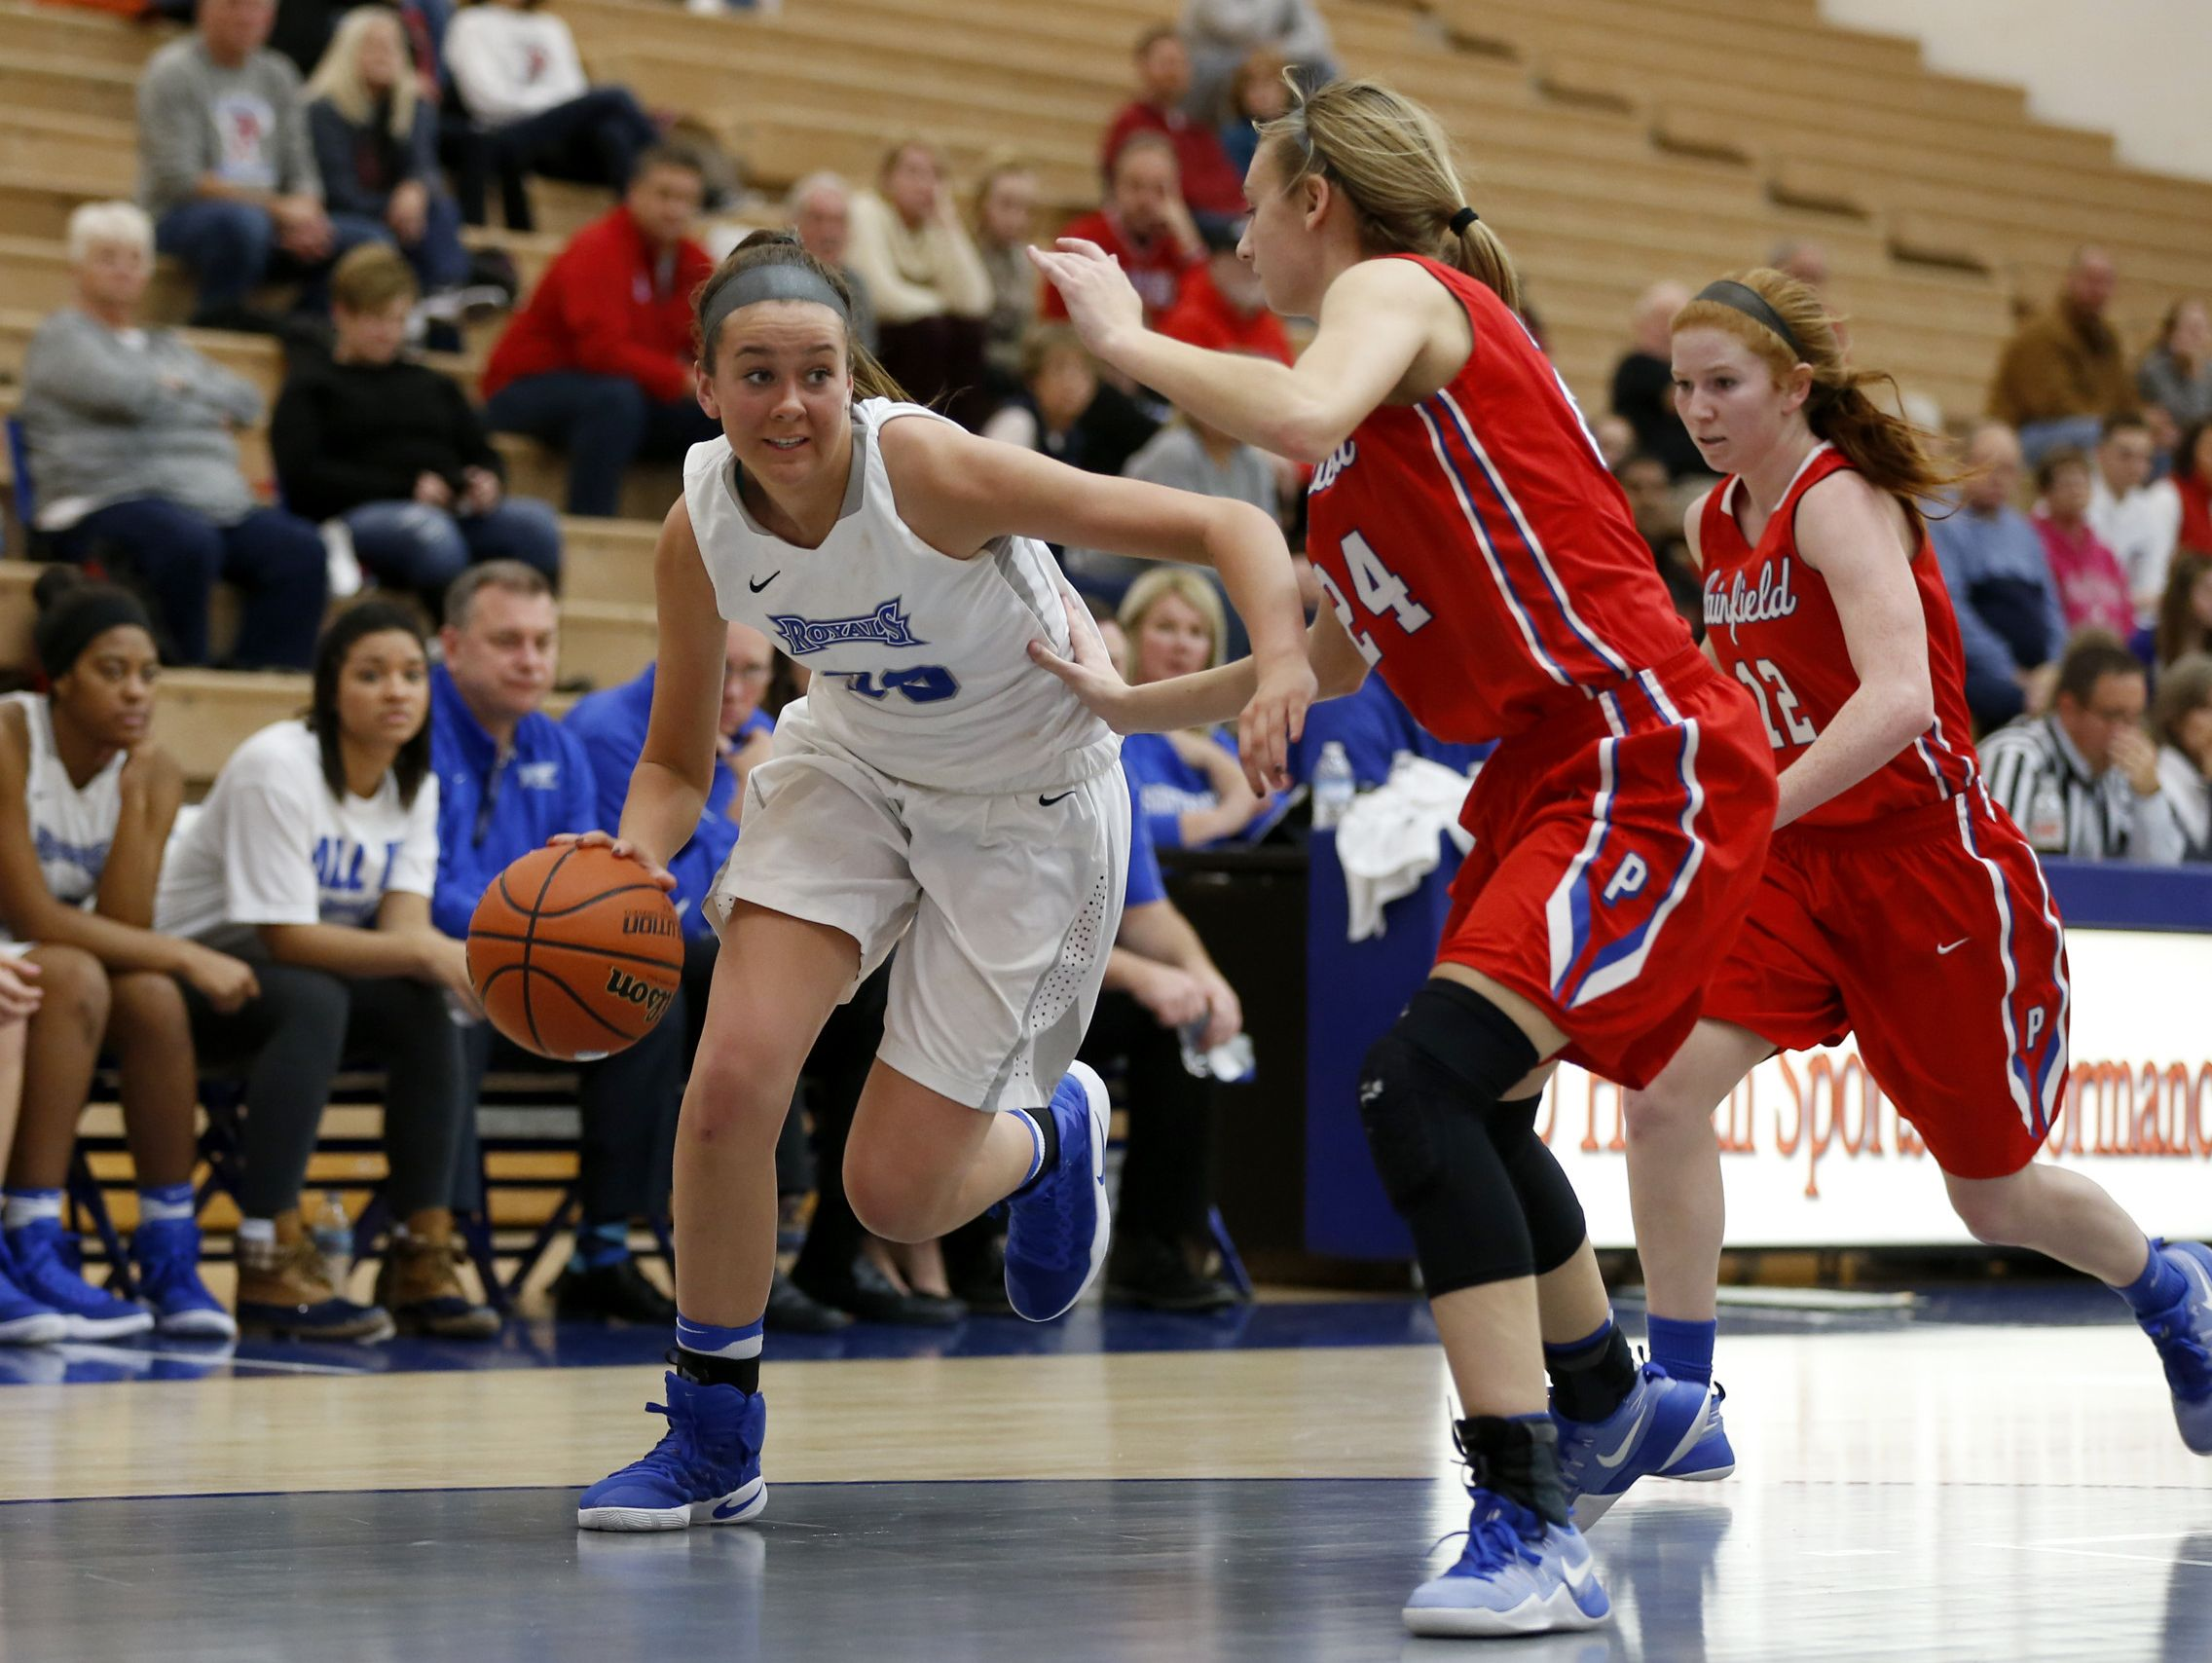 Hamilton Southeastern freshman Sydney Parrish scored 33 points in the Royals' 58-49 win over Plainfield on Dec. 22